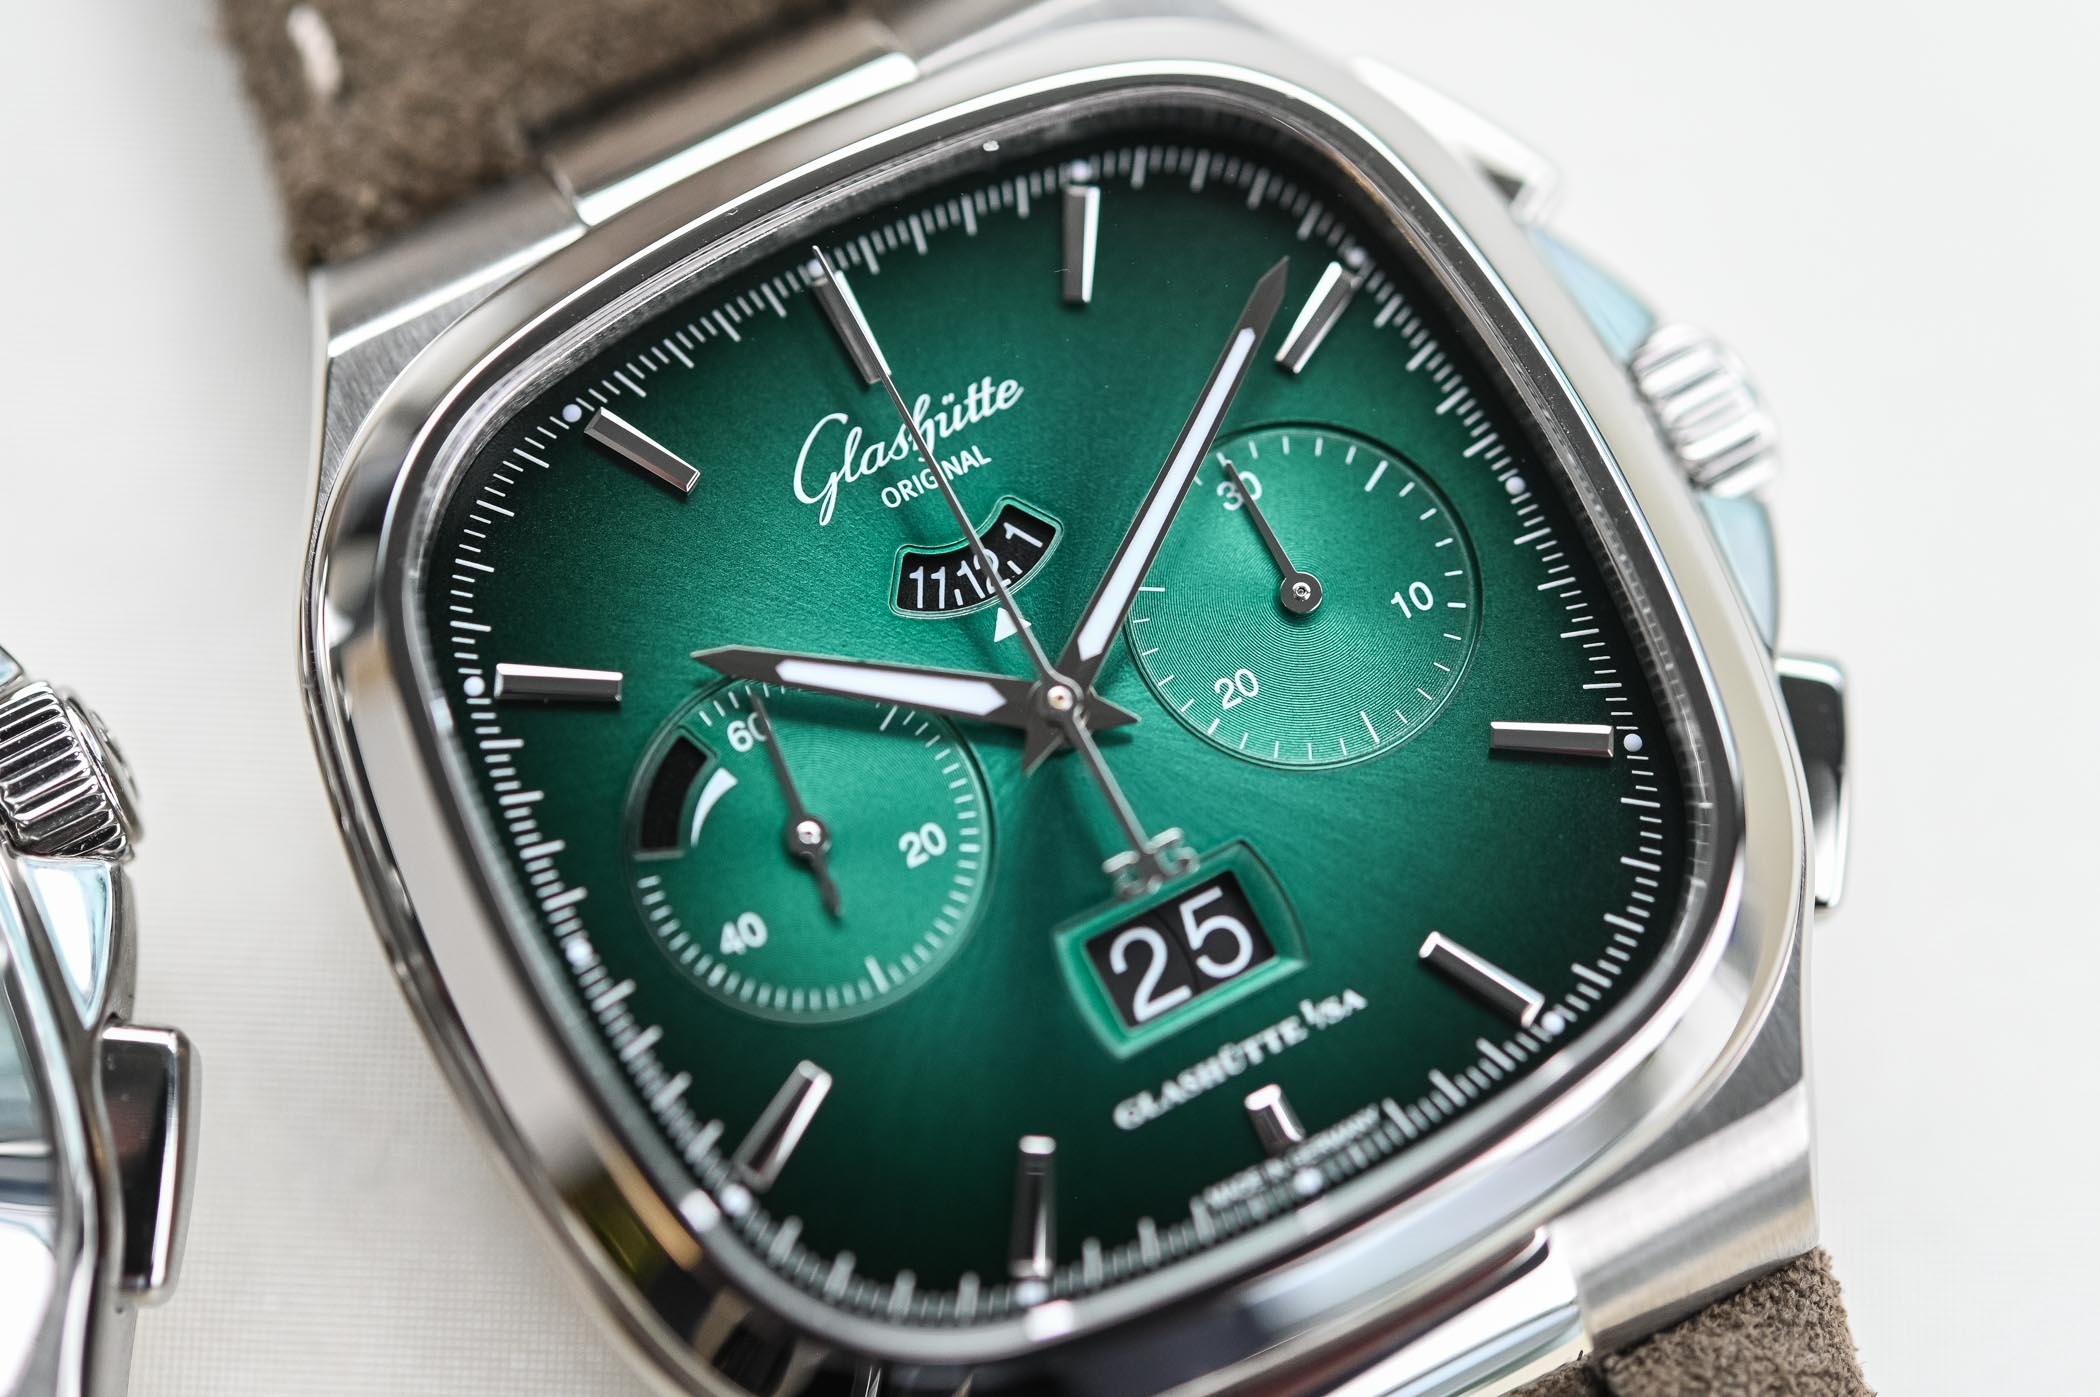 Glashutte Original Seventies Chronograph Limited Editions Gradient Dials